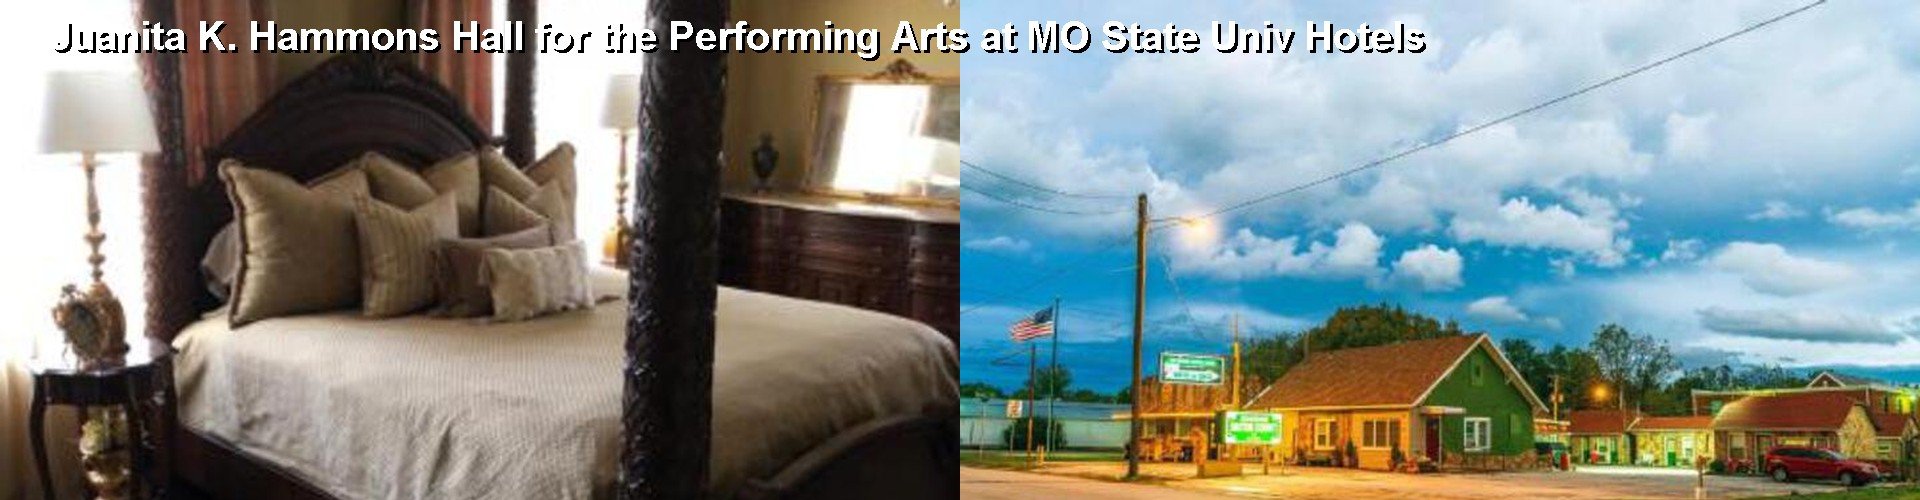 5 Best Hotels near Juanita K. Hammons Hall for the Performing Arts at MO State Univ